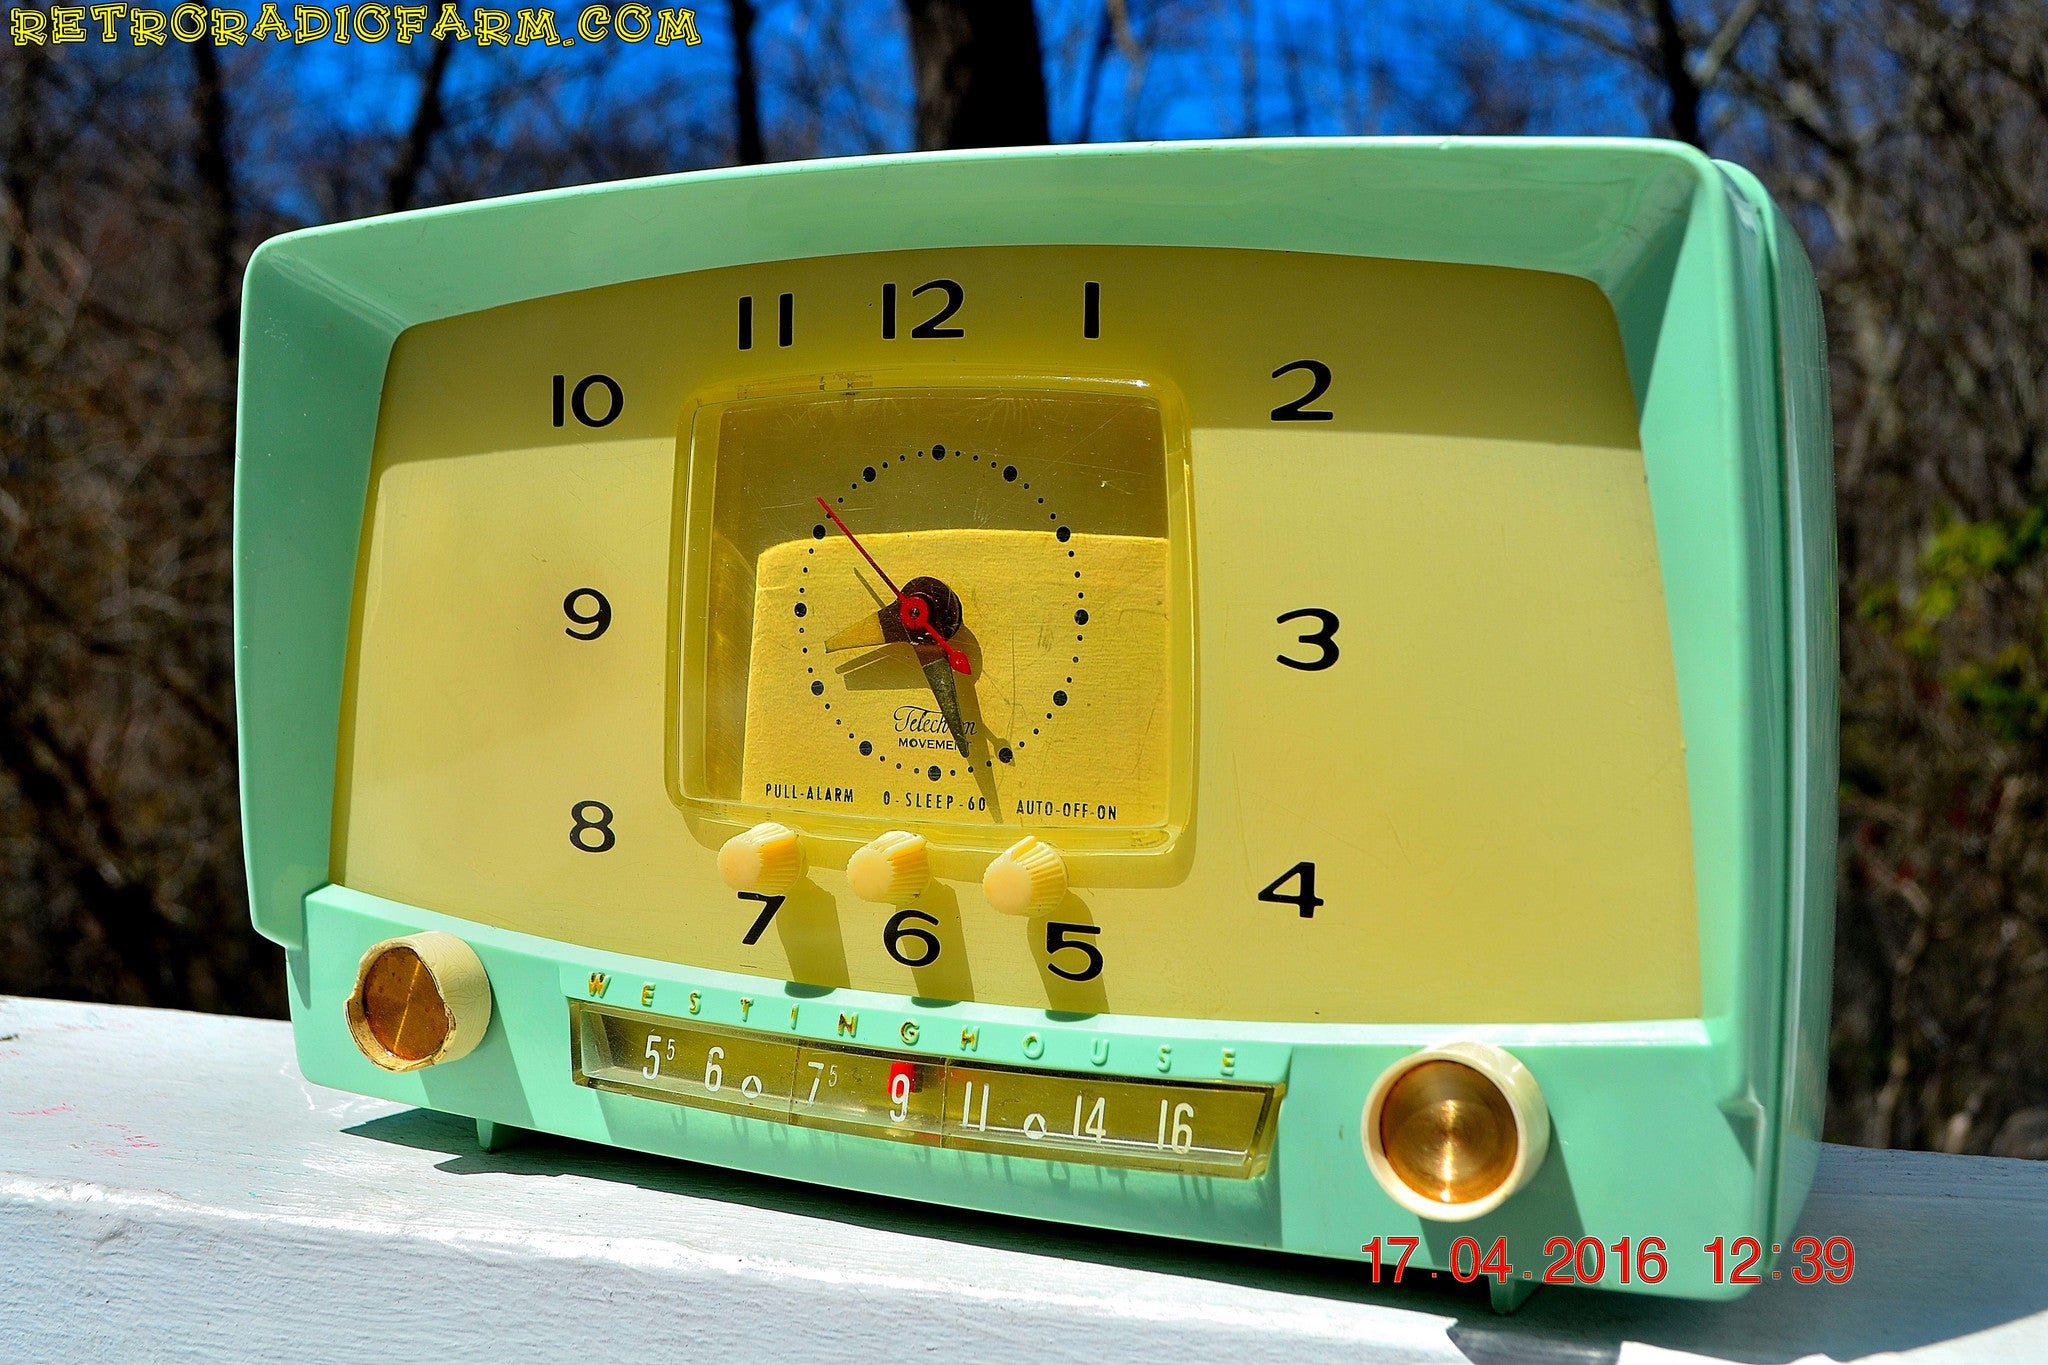 MINT GREEN Retro Mid Century 1955 Westinghouse Model H-548T5 AM Tube Radio Alarm Clock Totally Restored! , Vintage Radio - Westinghouse, Retro Radio Farm  - 1